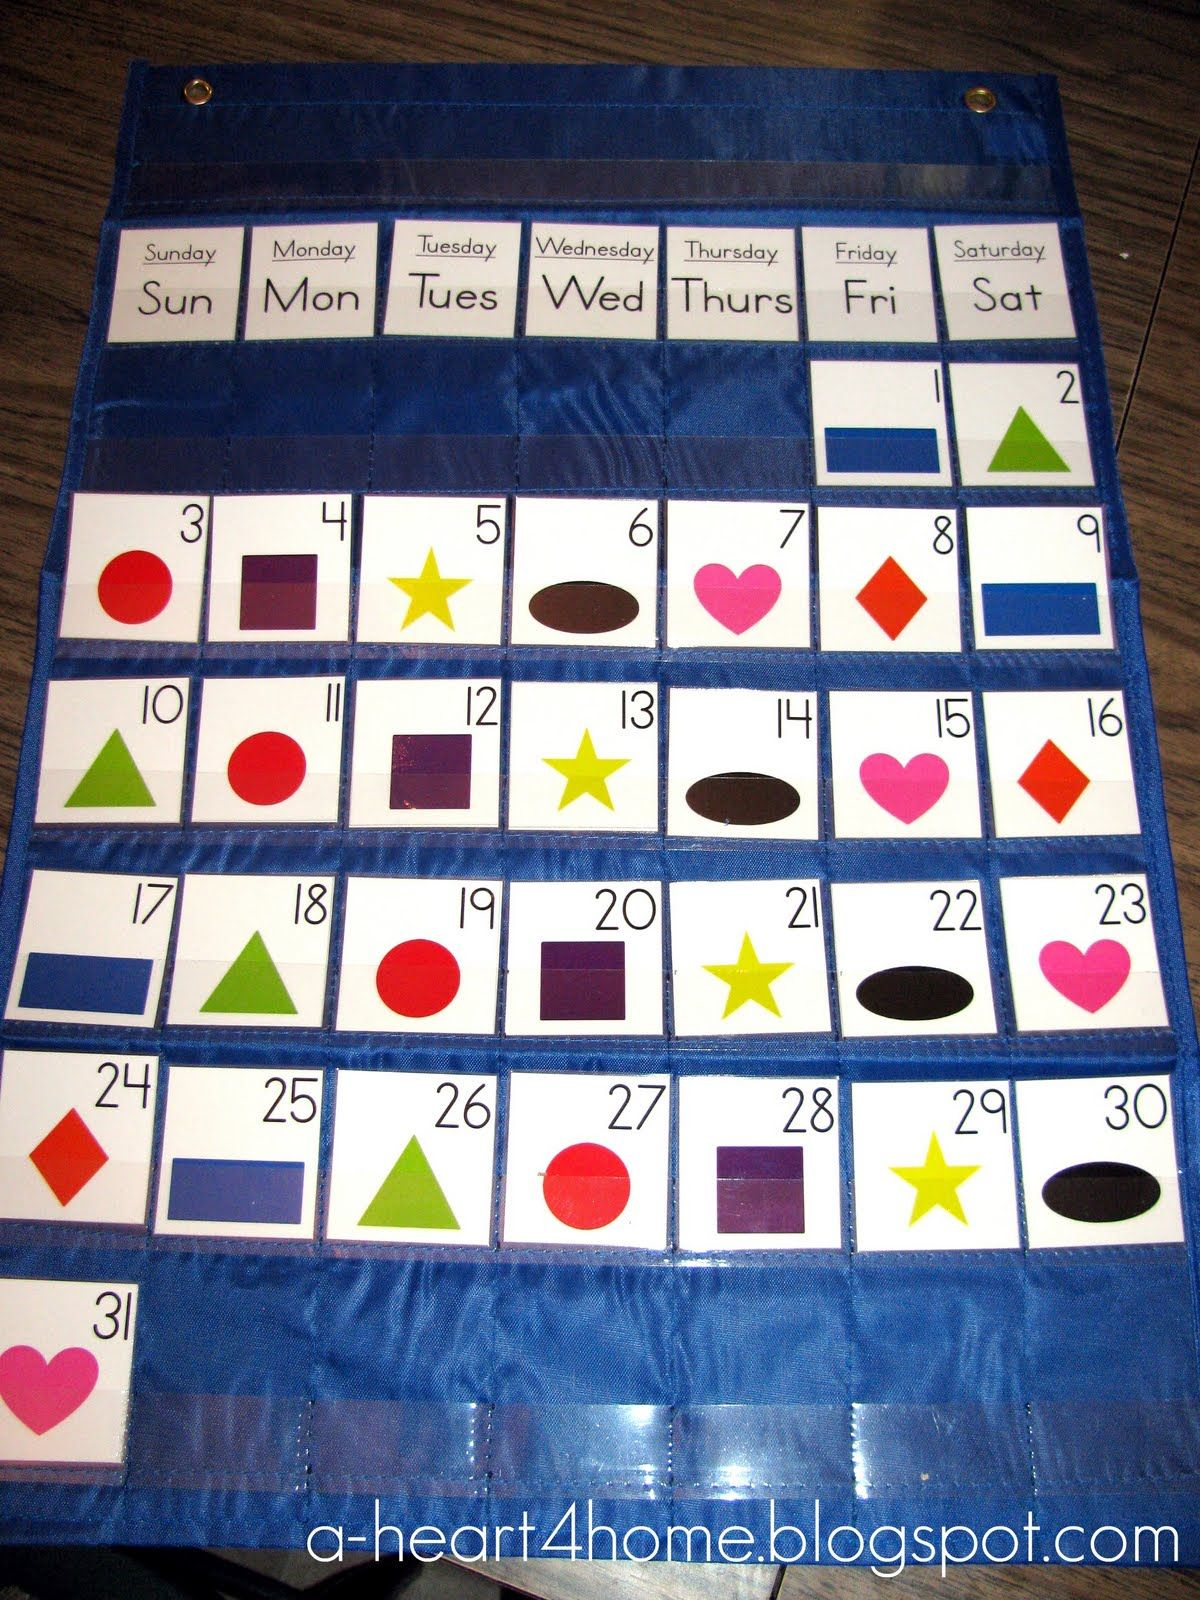 A Heart For Home: Sew Your Own Pocket Chart Calendar From A